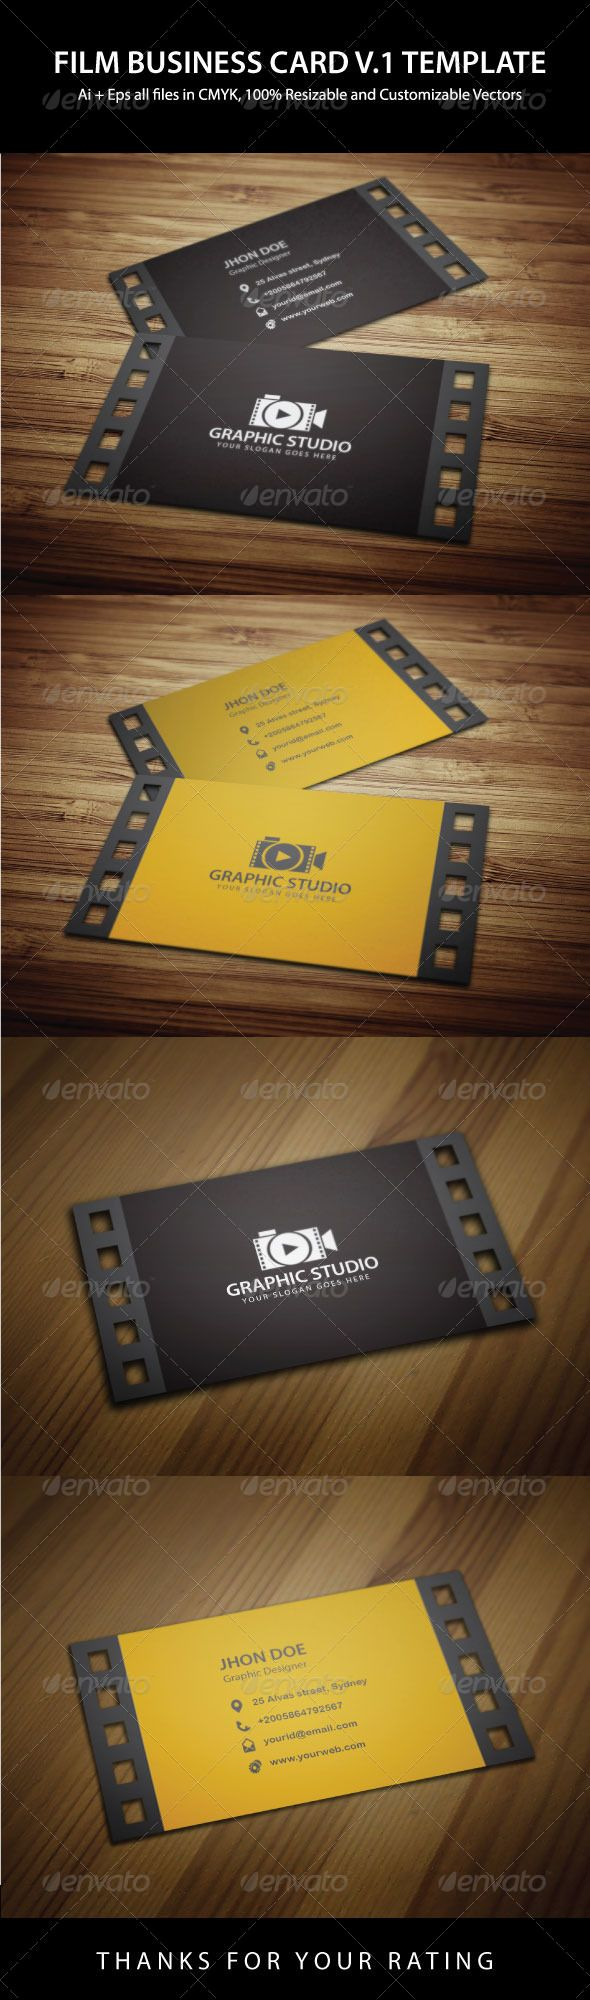 Filmography Business Card Template Photography Business Cards Business Card Design Creative Business Cards Creative